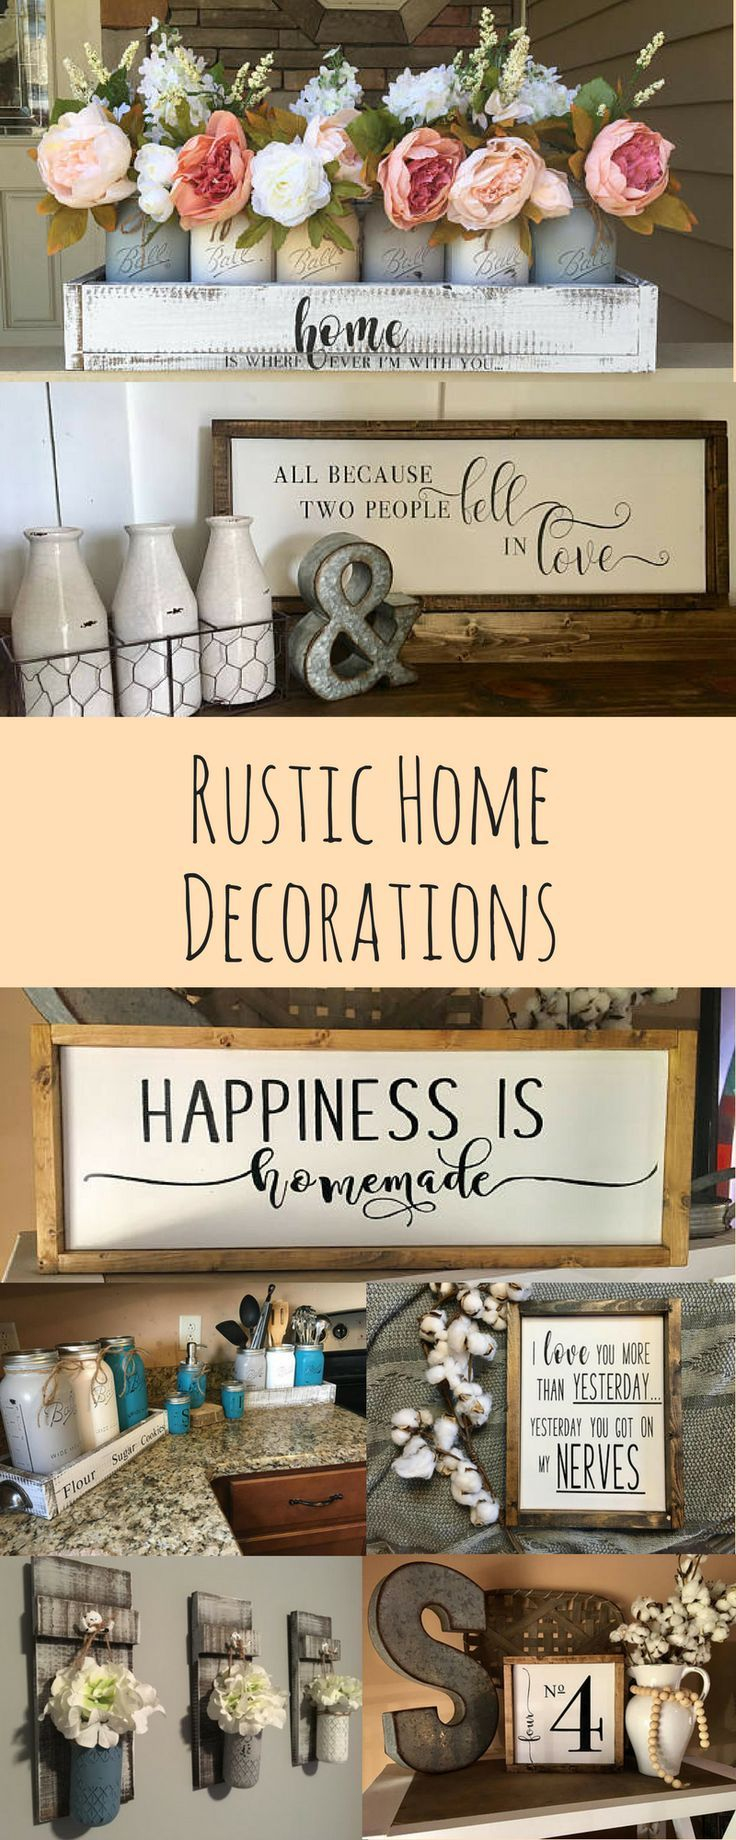 Rustic Home Decor, Farmhouse decorations, country style, afflink